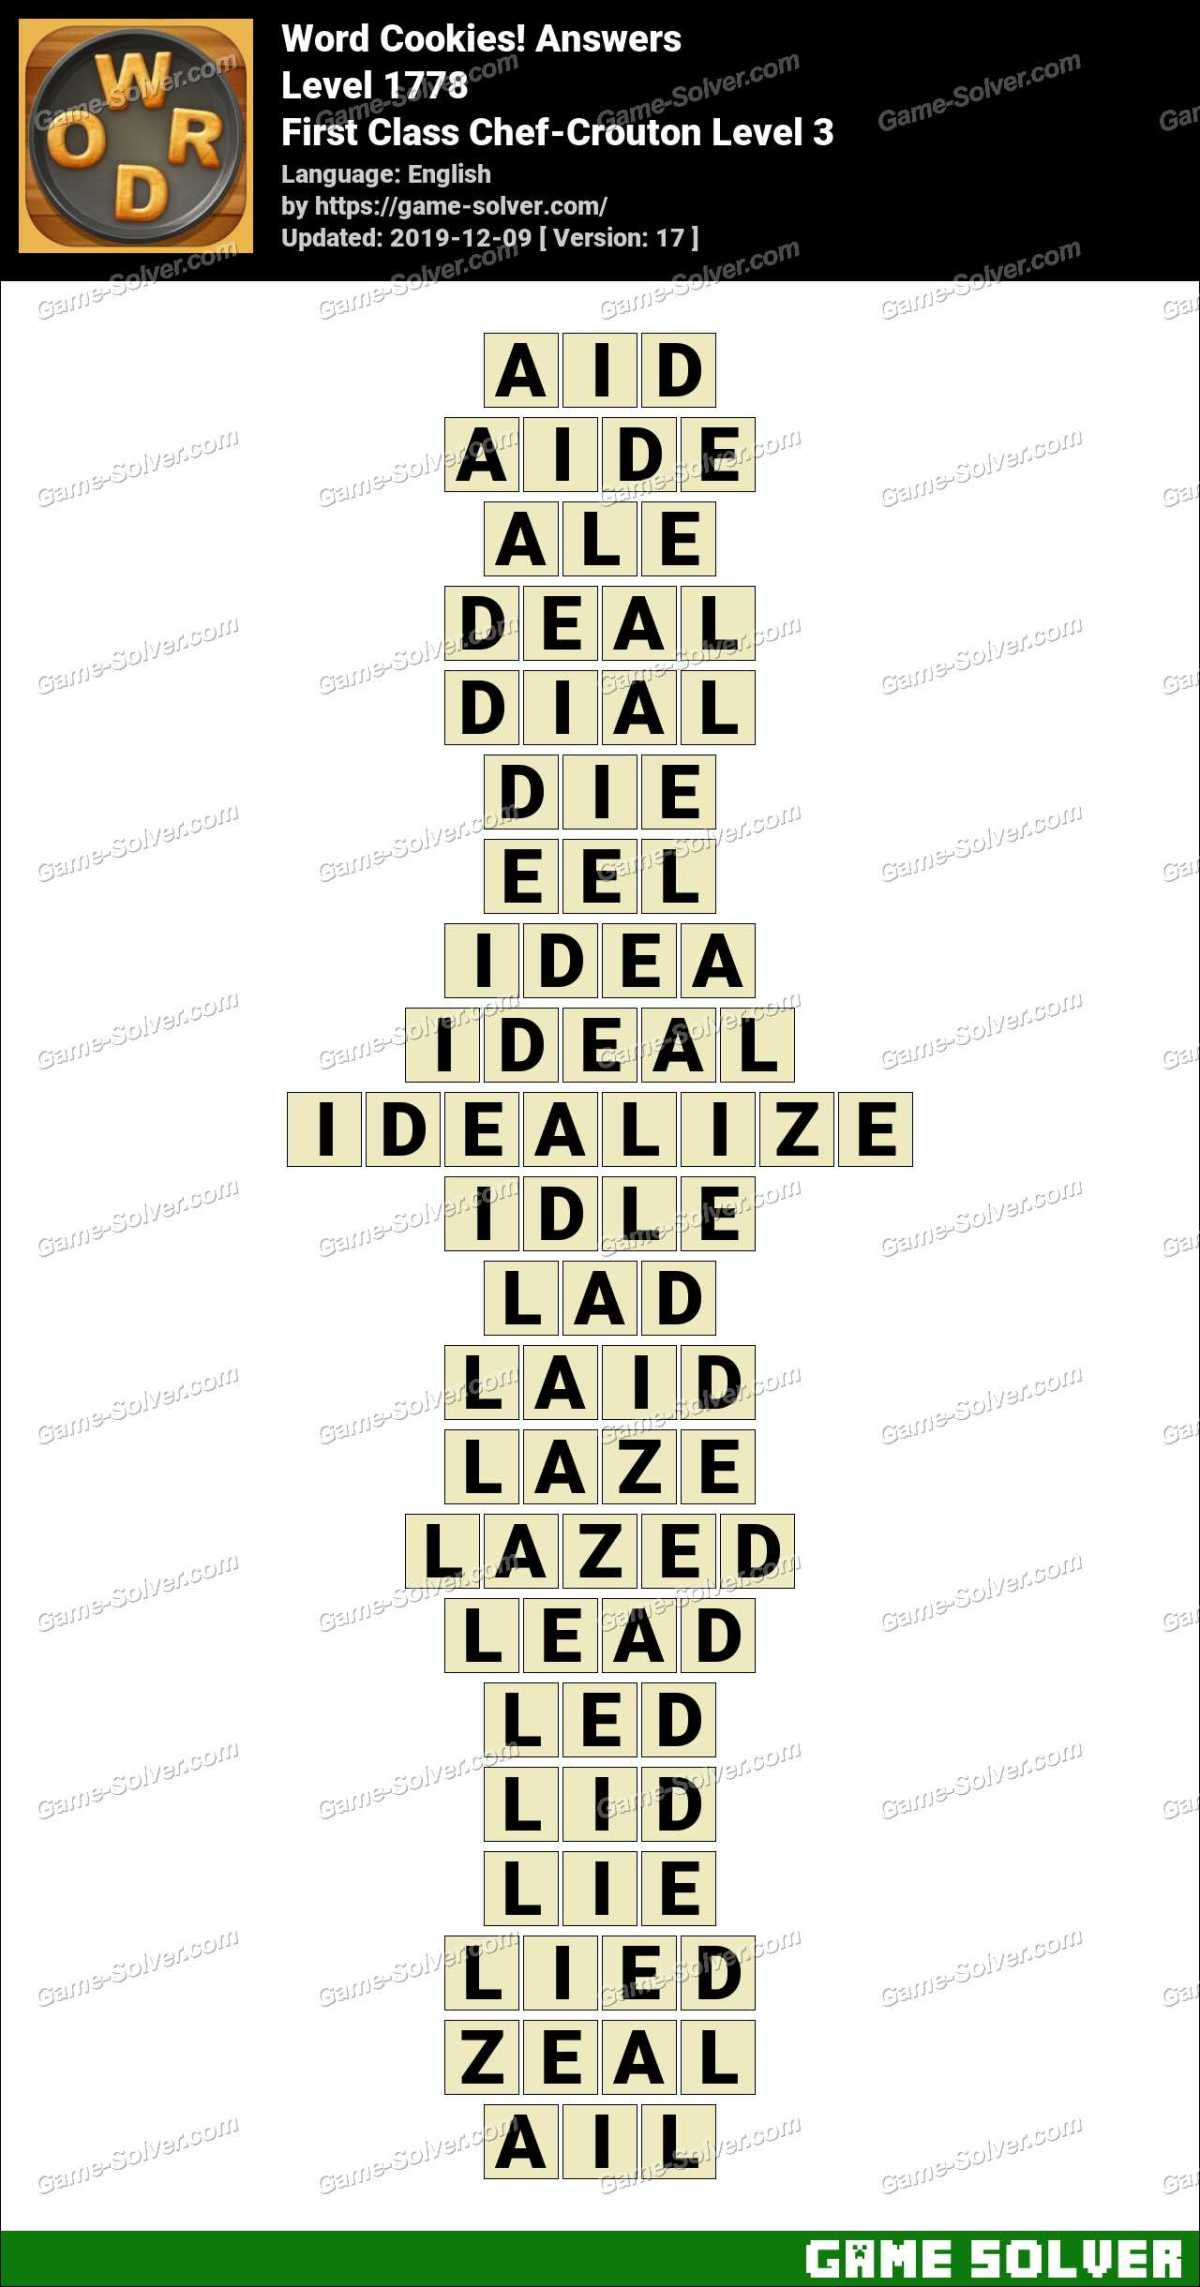 Word Cookies First Class Chef-Crouton Level 3 Answers